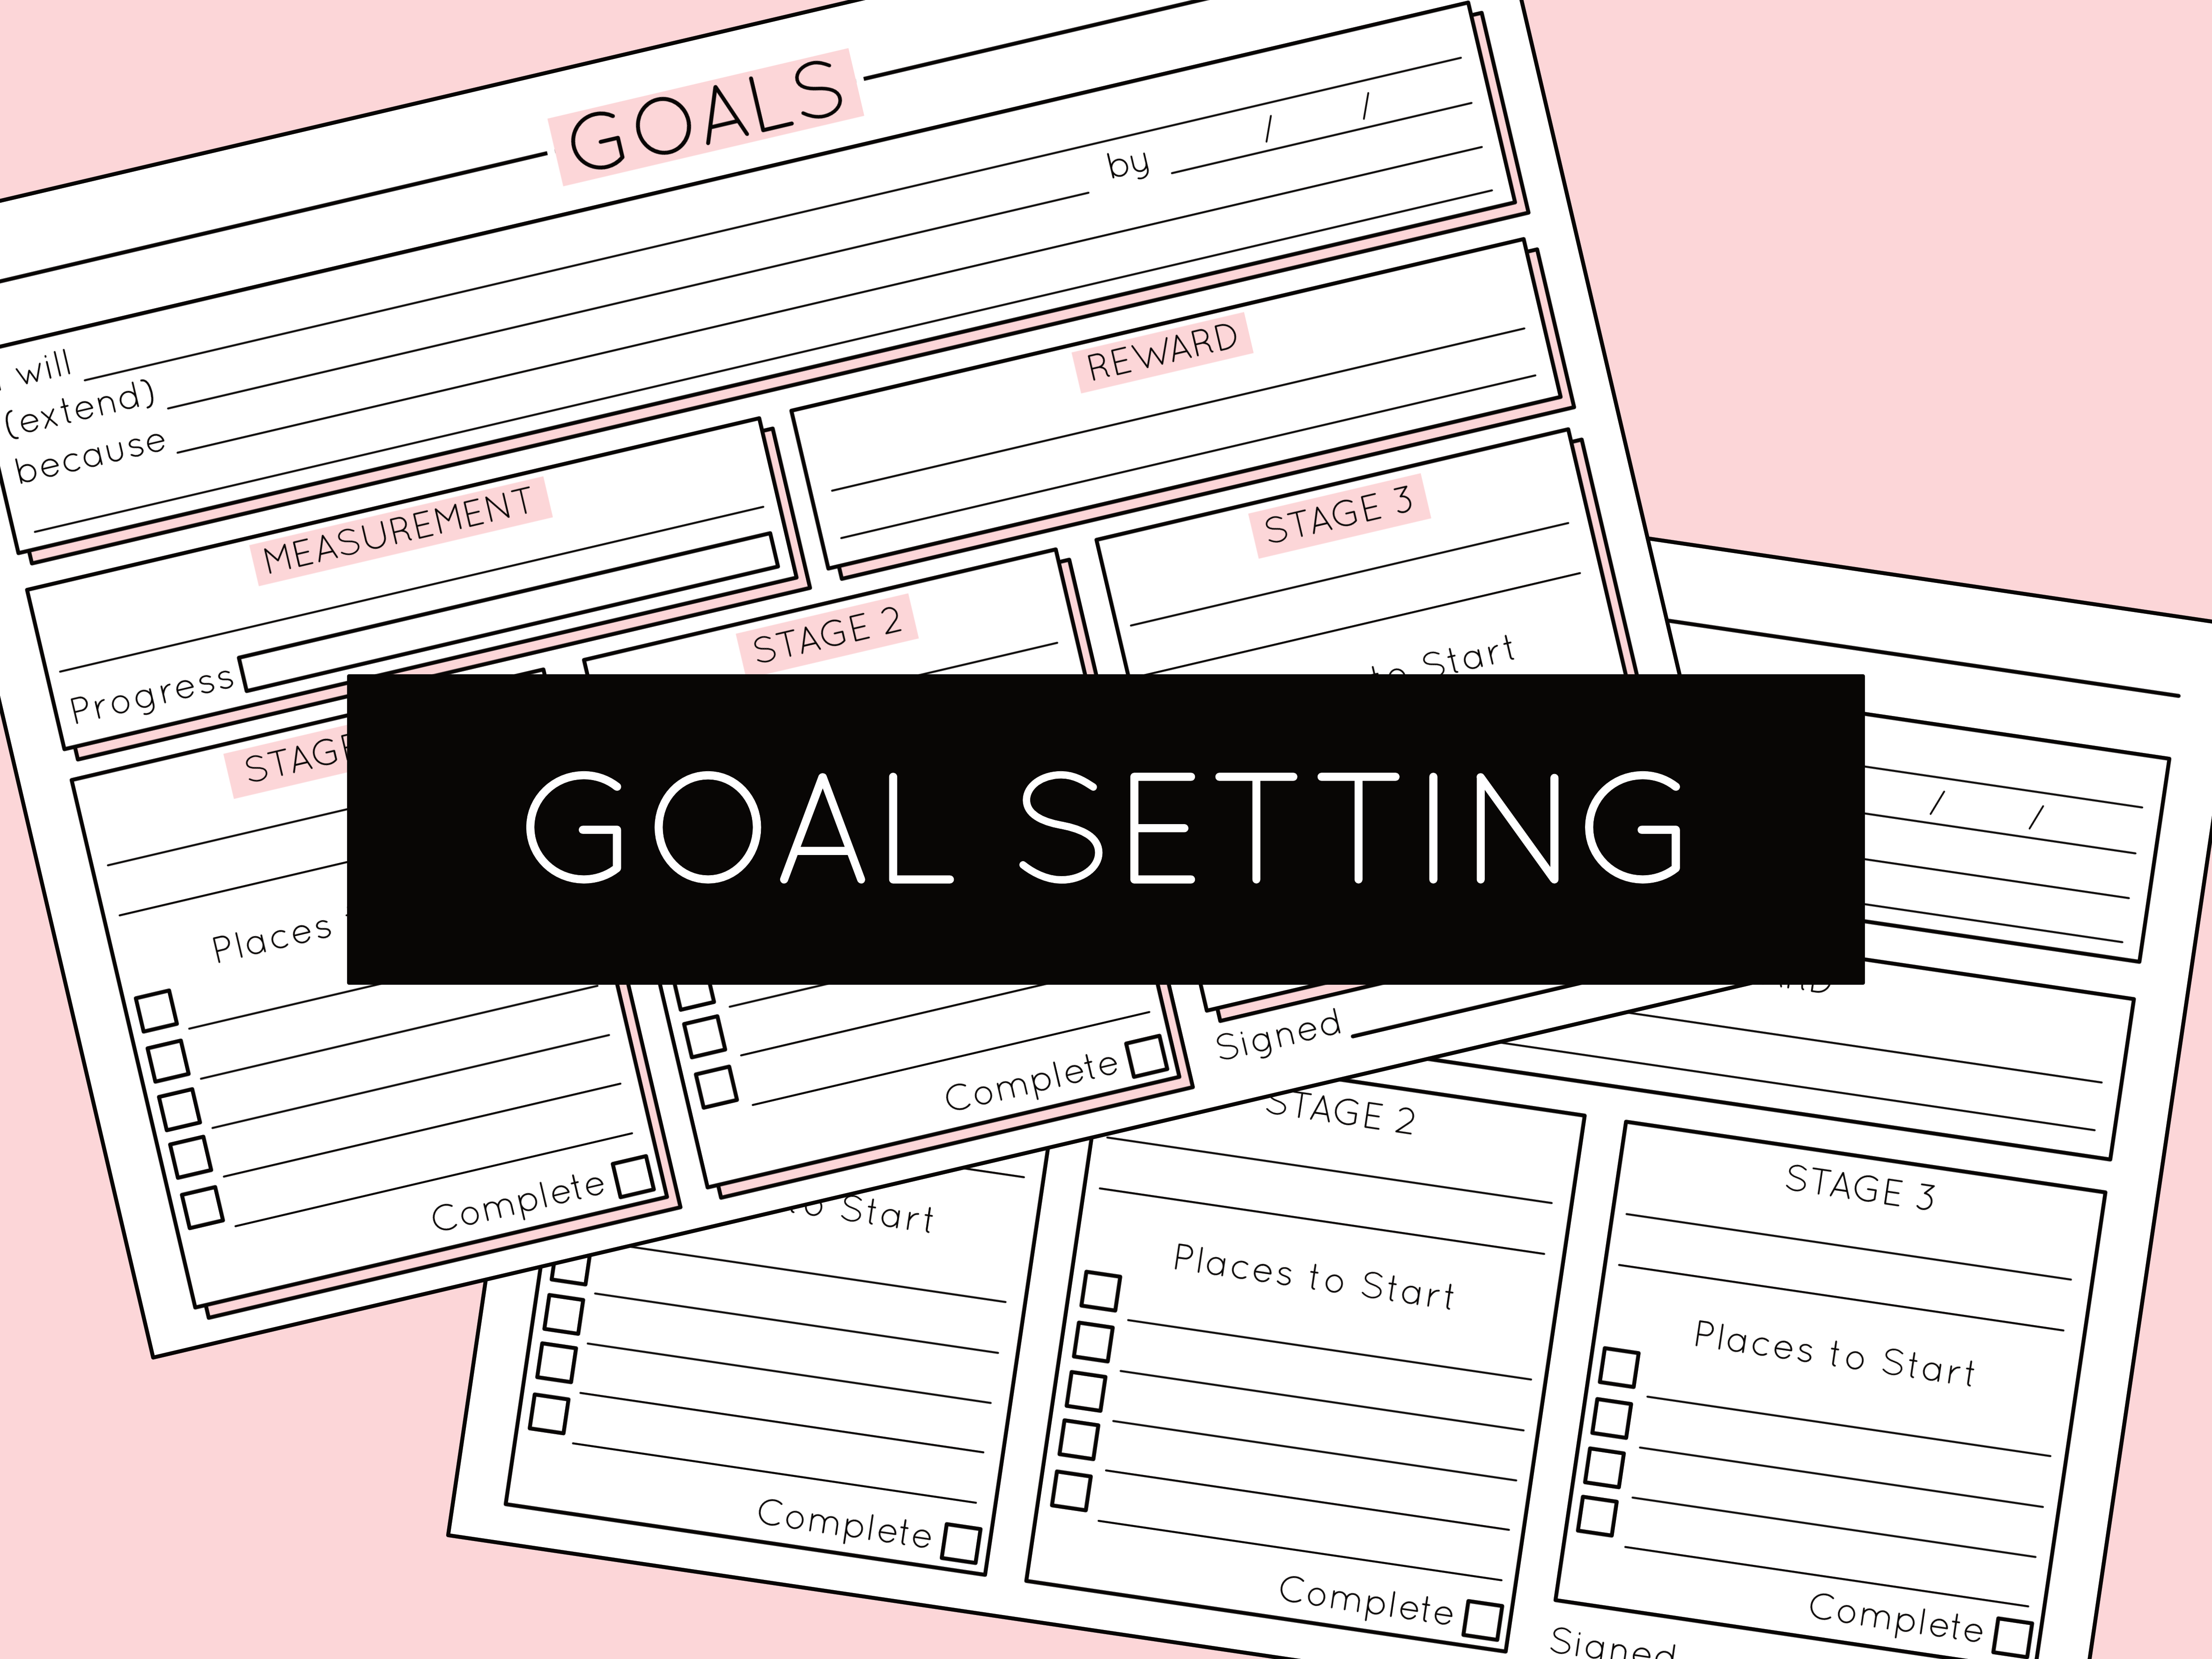 Top 5 tips for setting goals